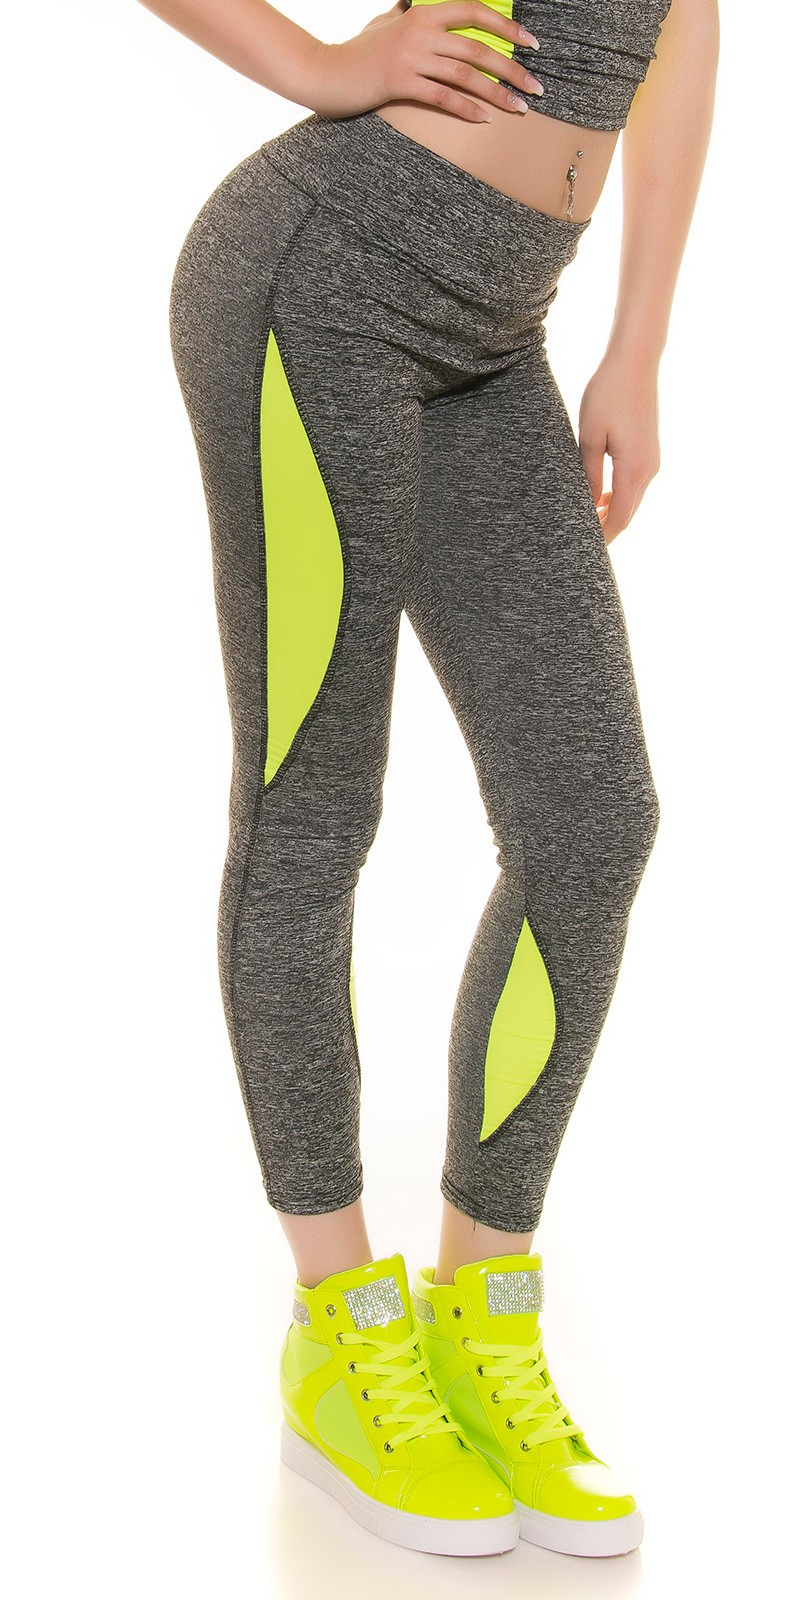 Fitness leggings - Neon-sárga (L/XL)